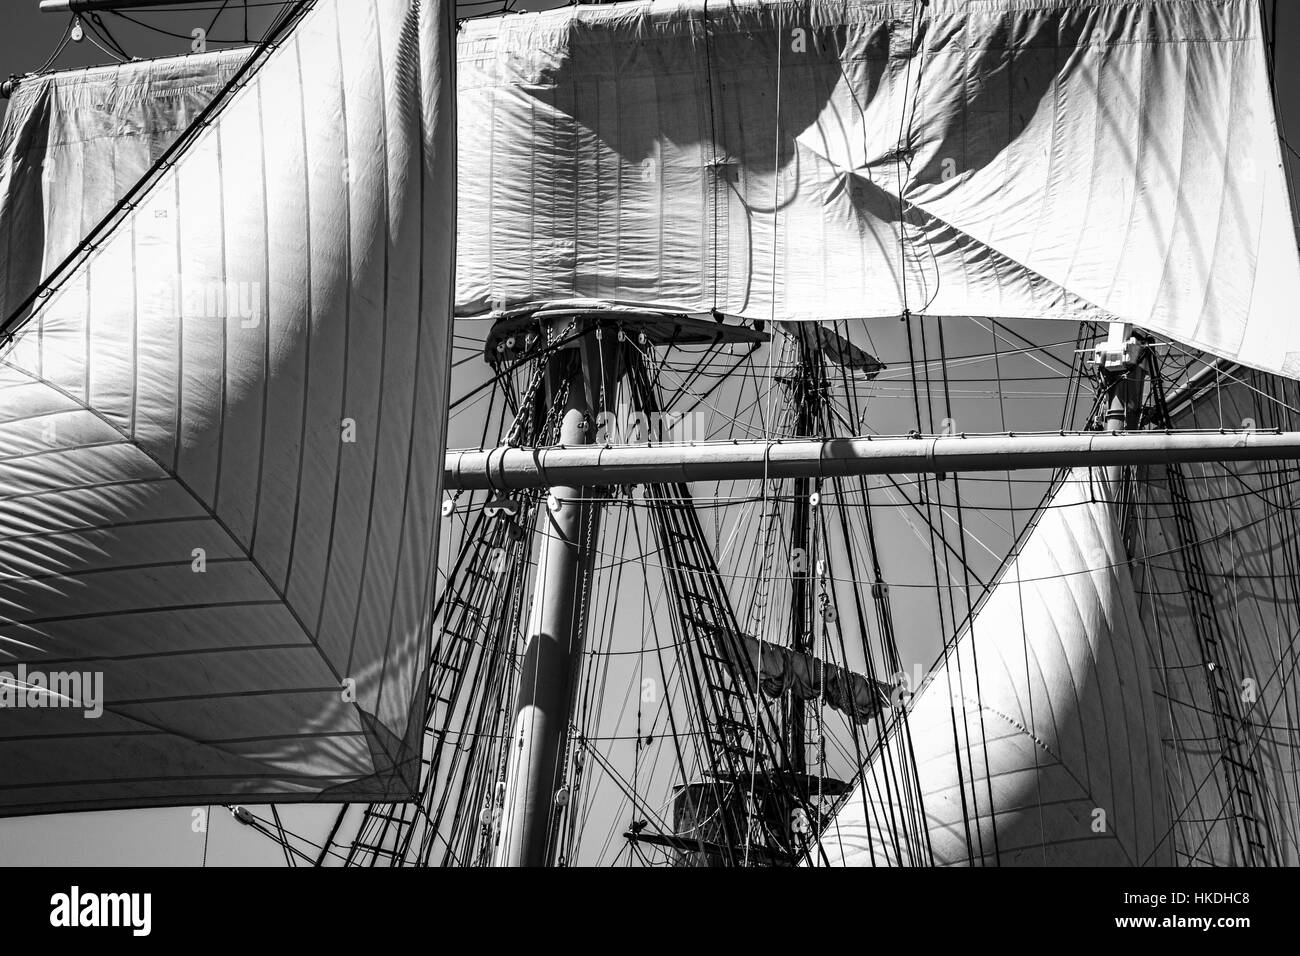 Ship masts during the 2015 Festival of Sail in San Diego, CA. - Stock Image